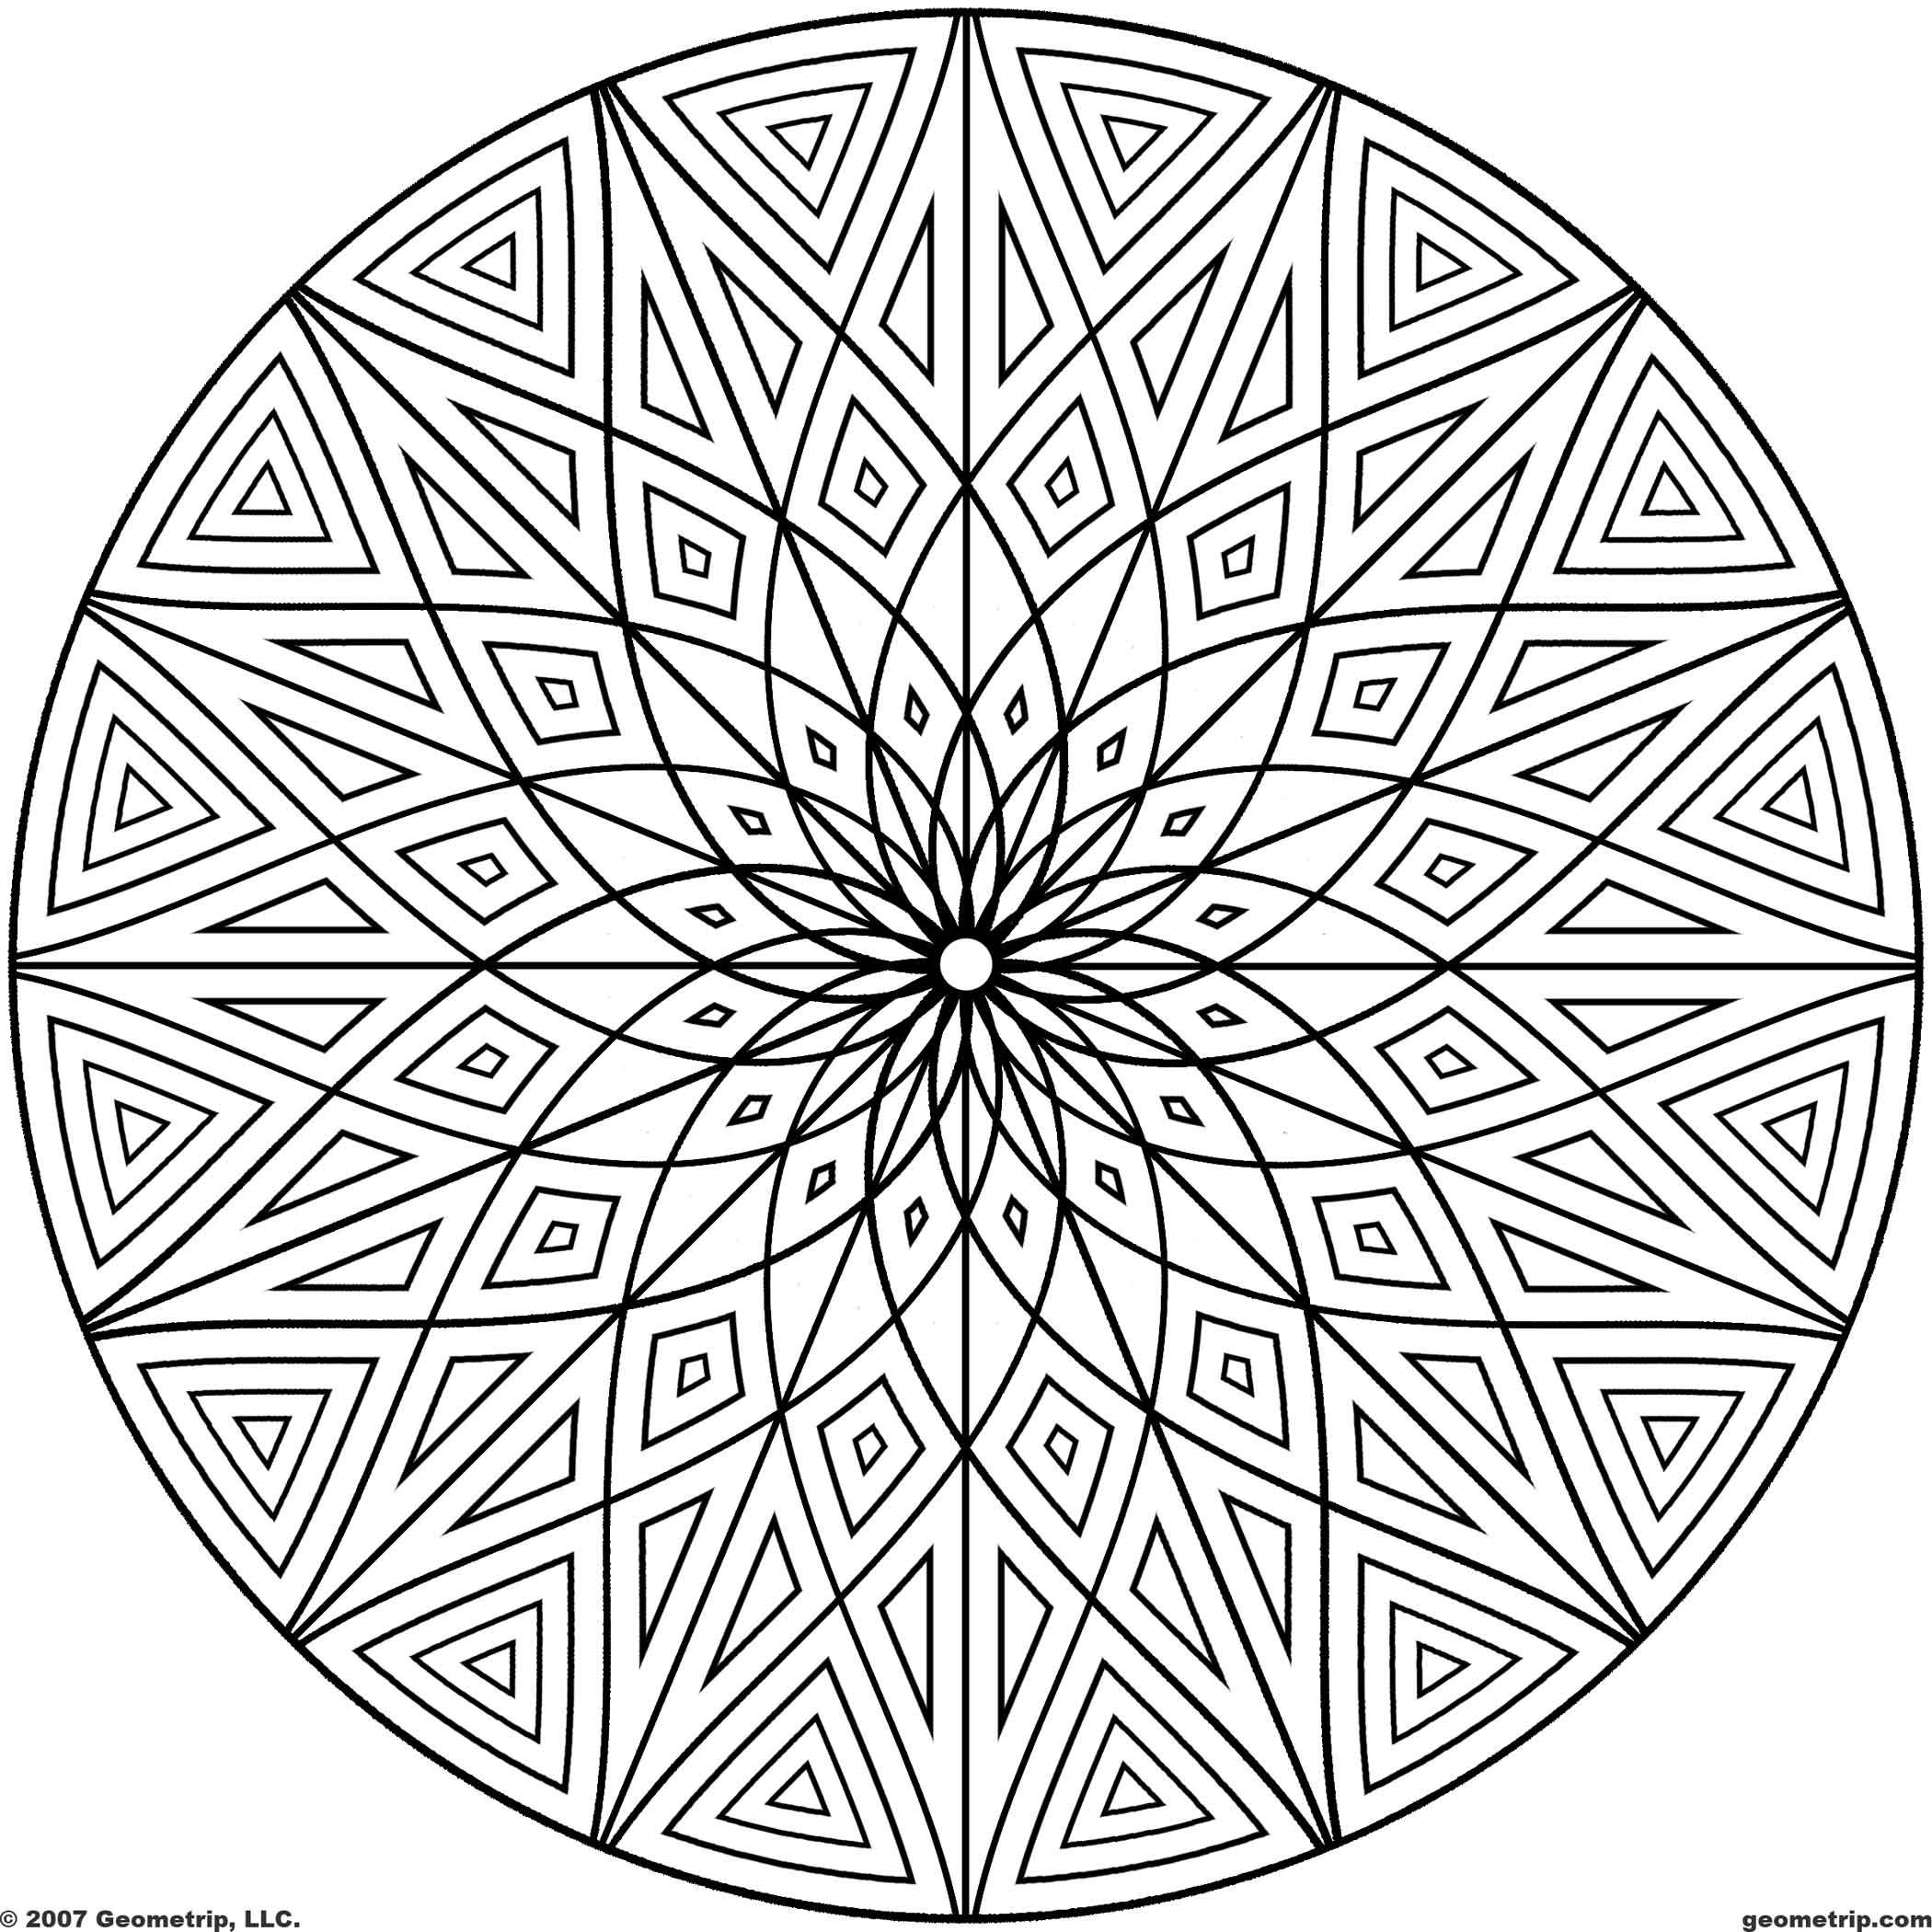 coloring pages patterns | Printable Geometric Patterns | Geometrip.com - Free ...